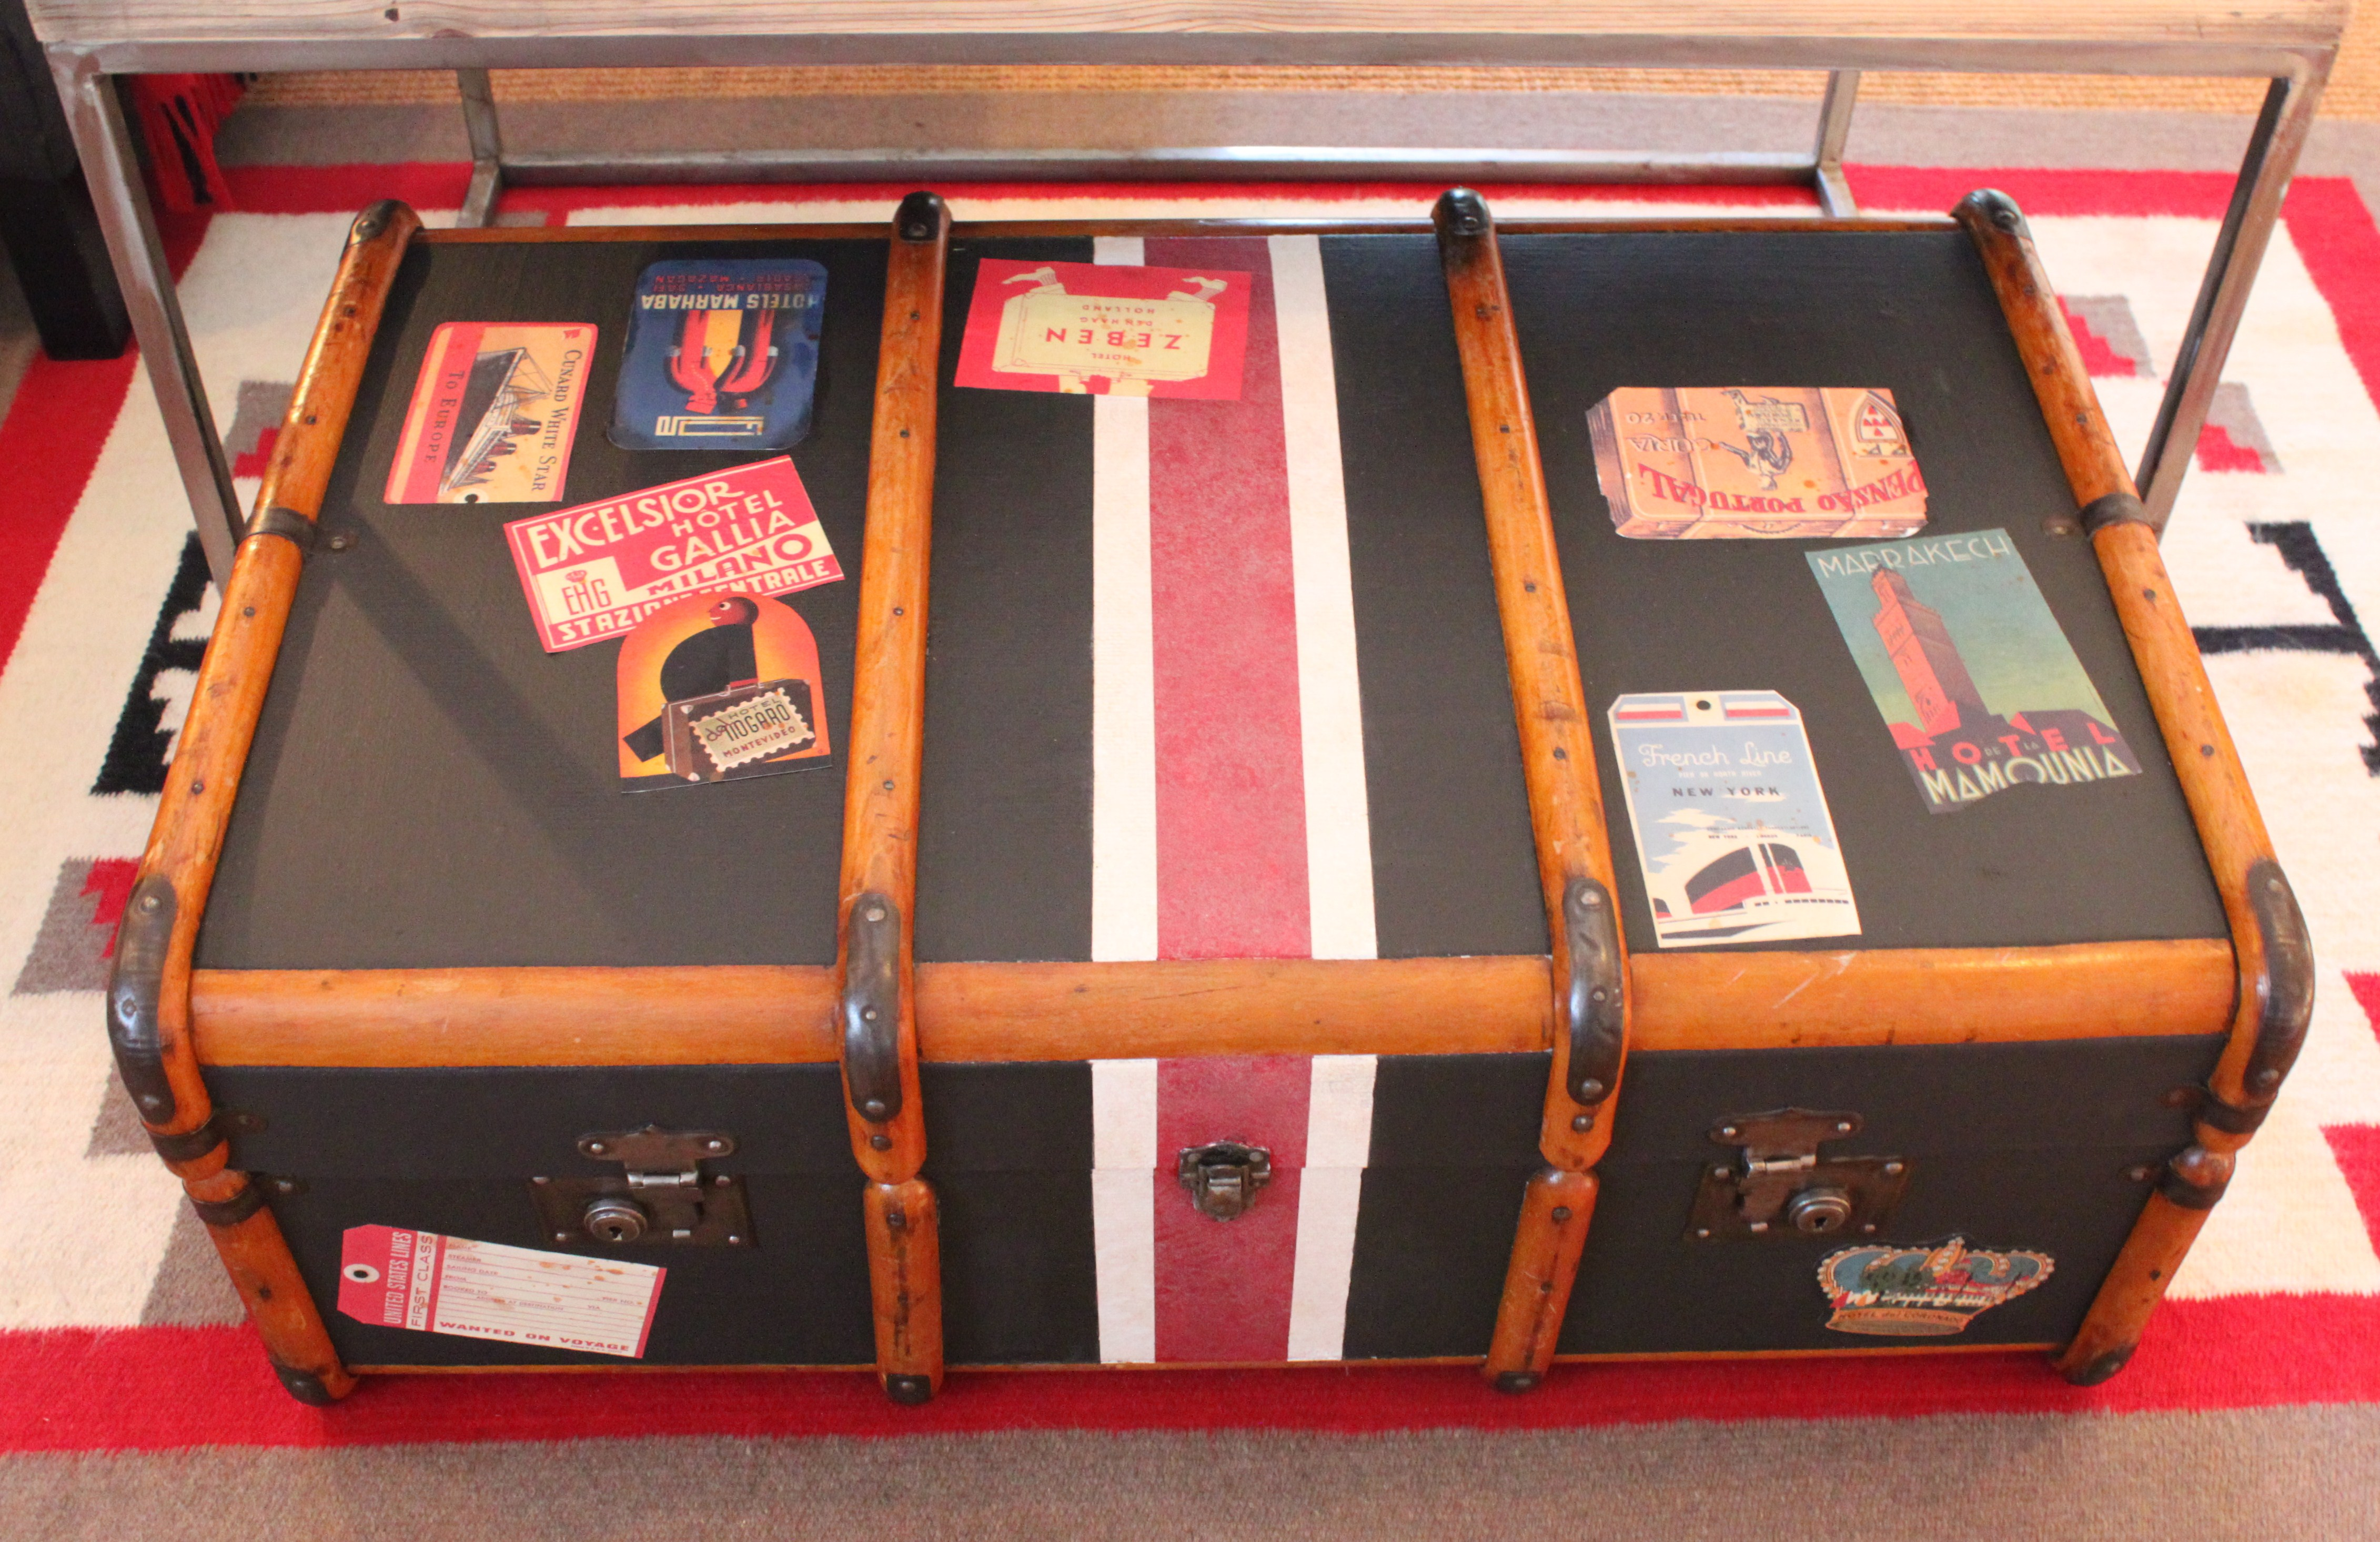 Indiana Travel Trunks Images New Old Steamer Trunk The Cavender Diary Jpg